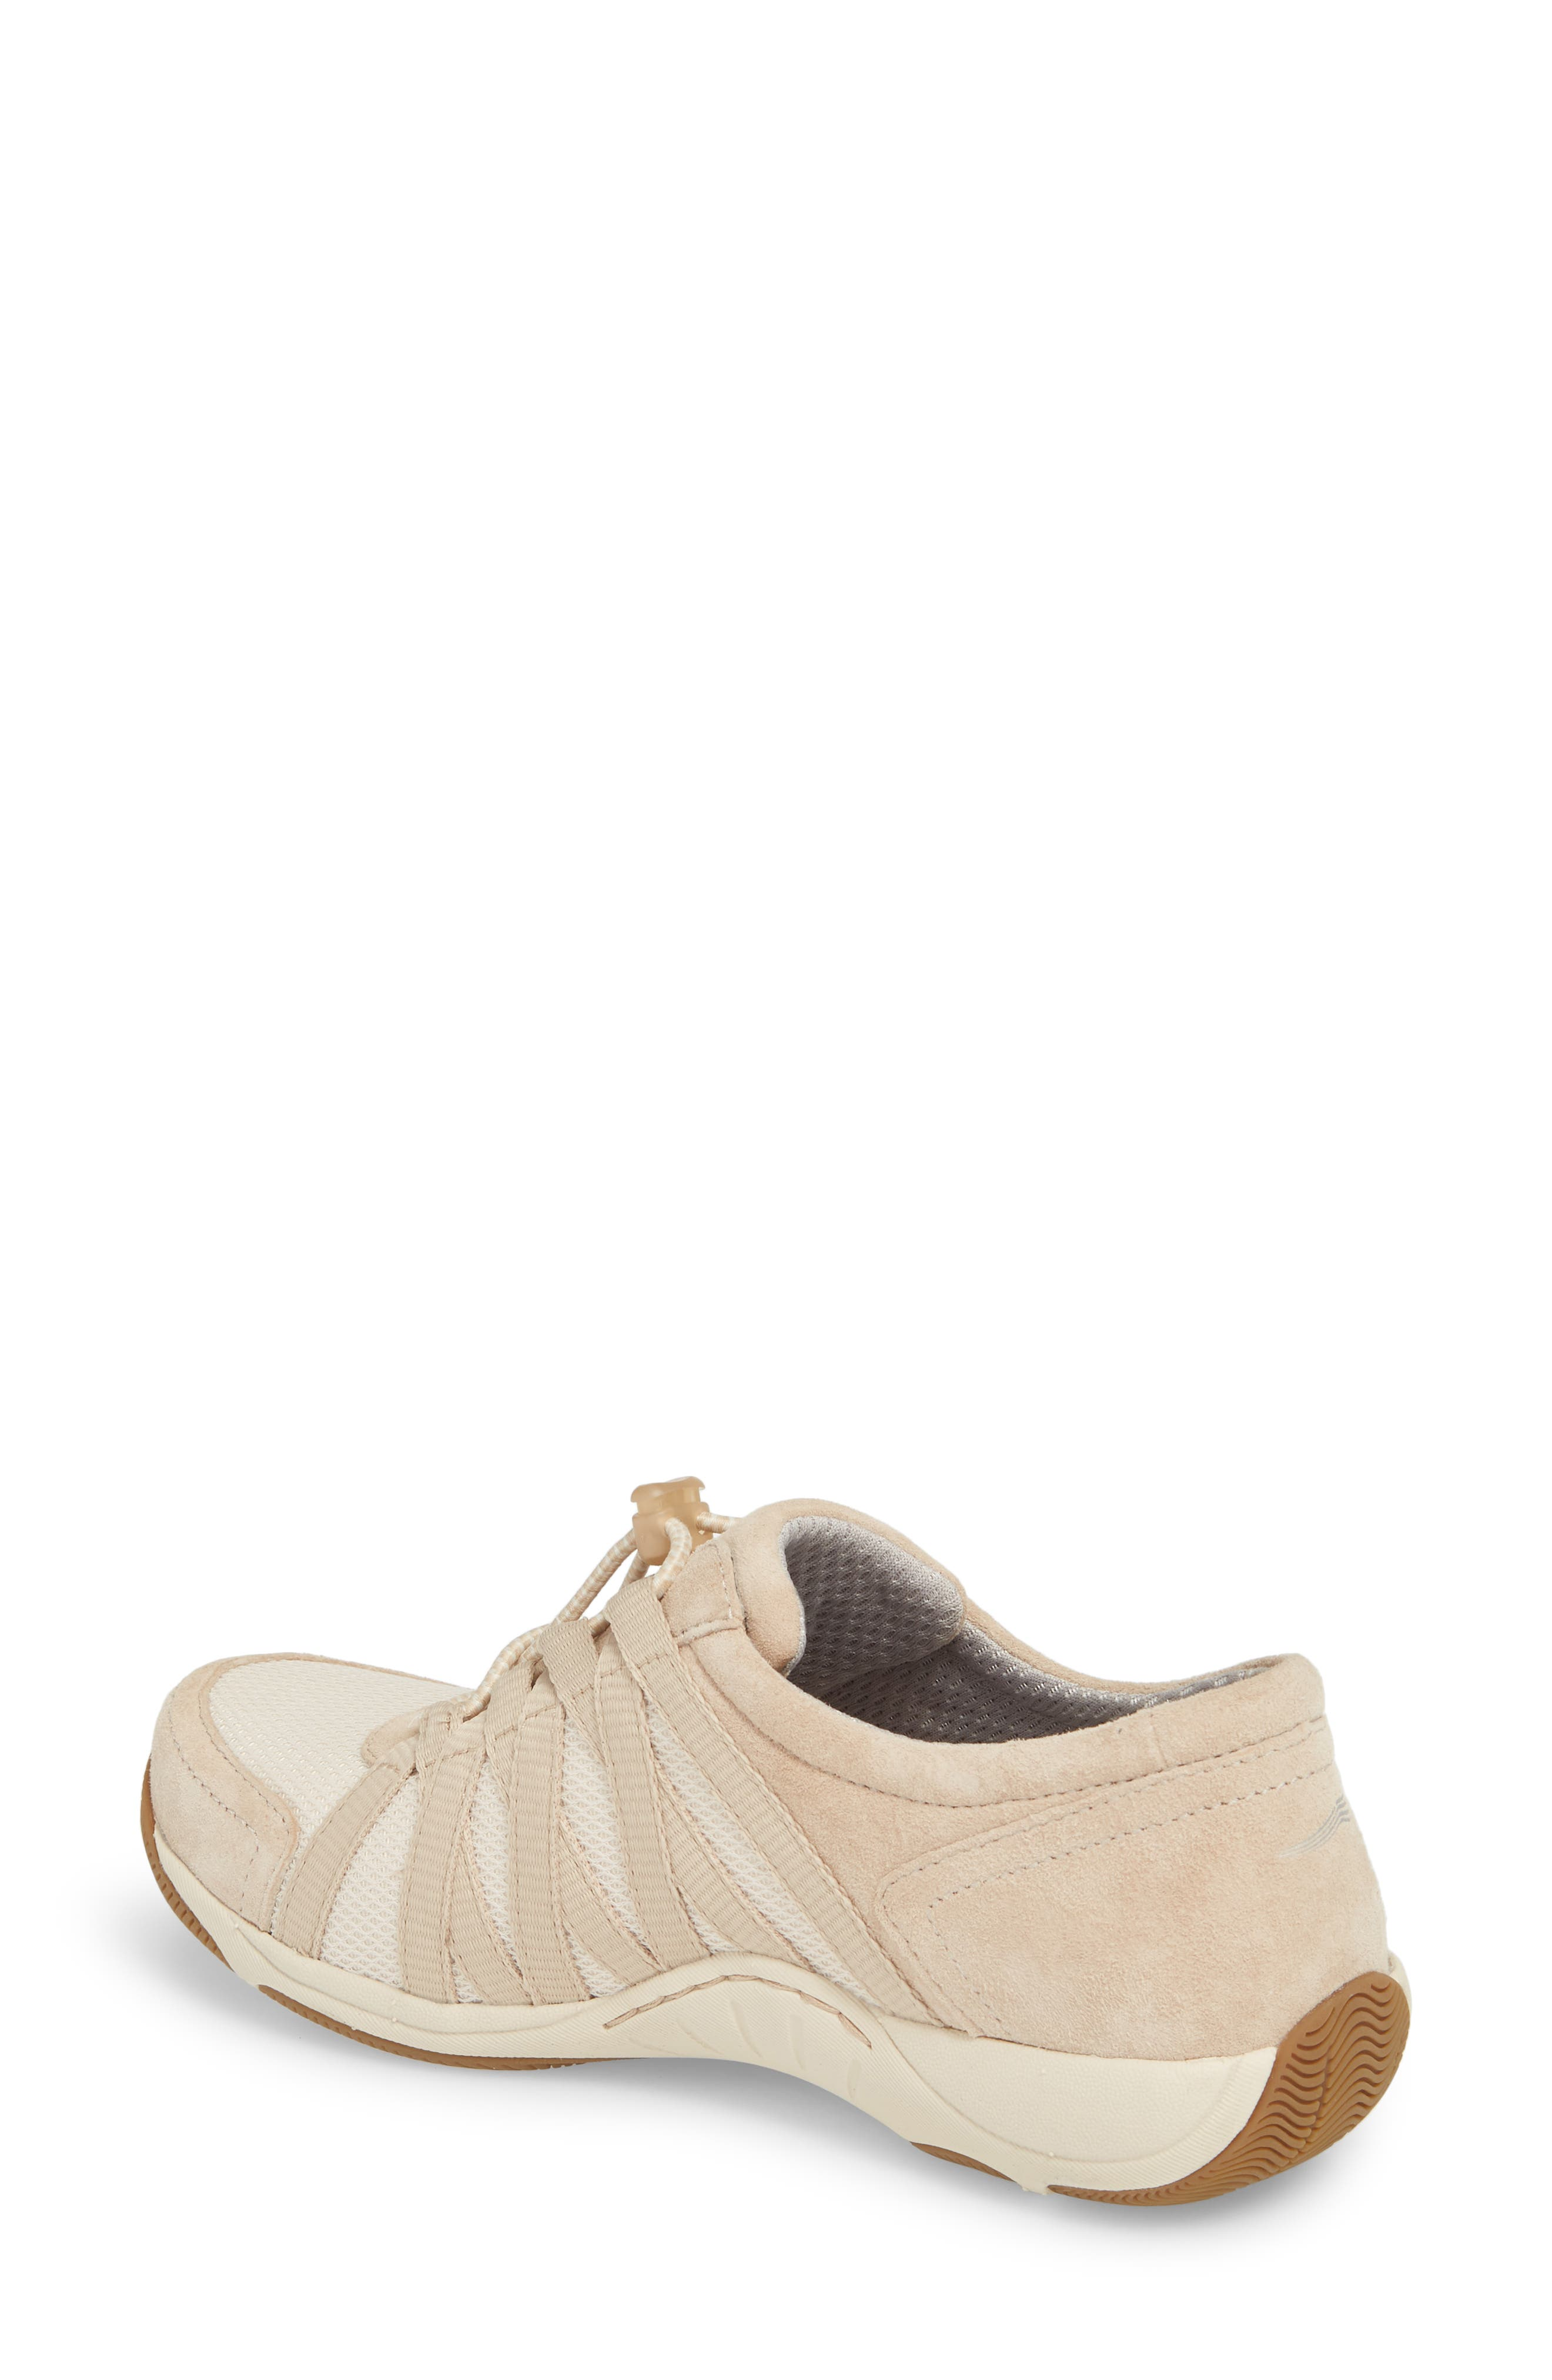 Halifax Collection Honor Sneaker,                             Alternate thumbnail 11, color,